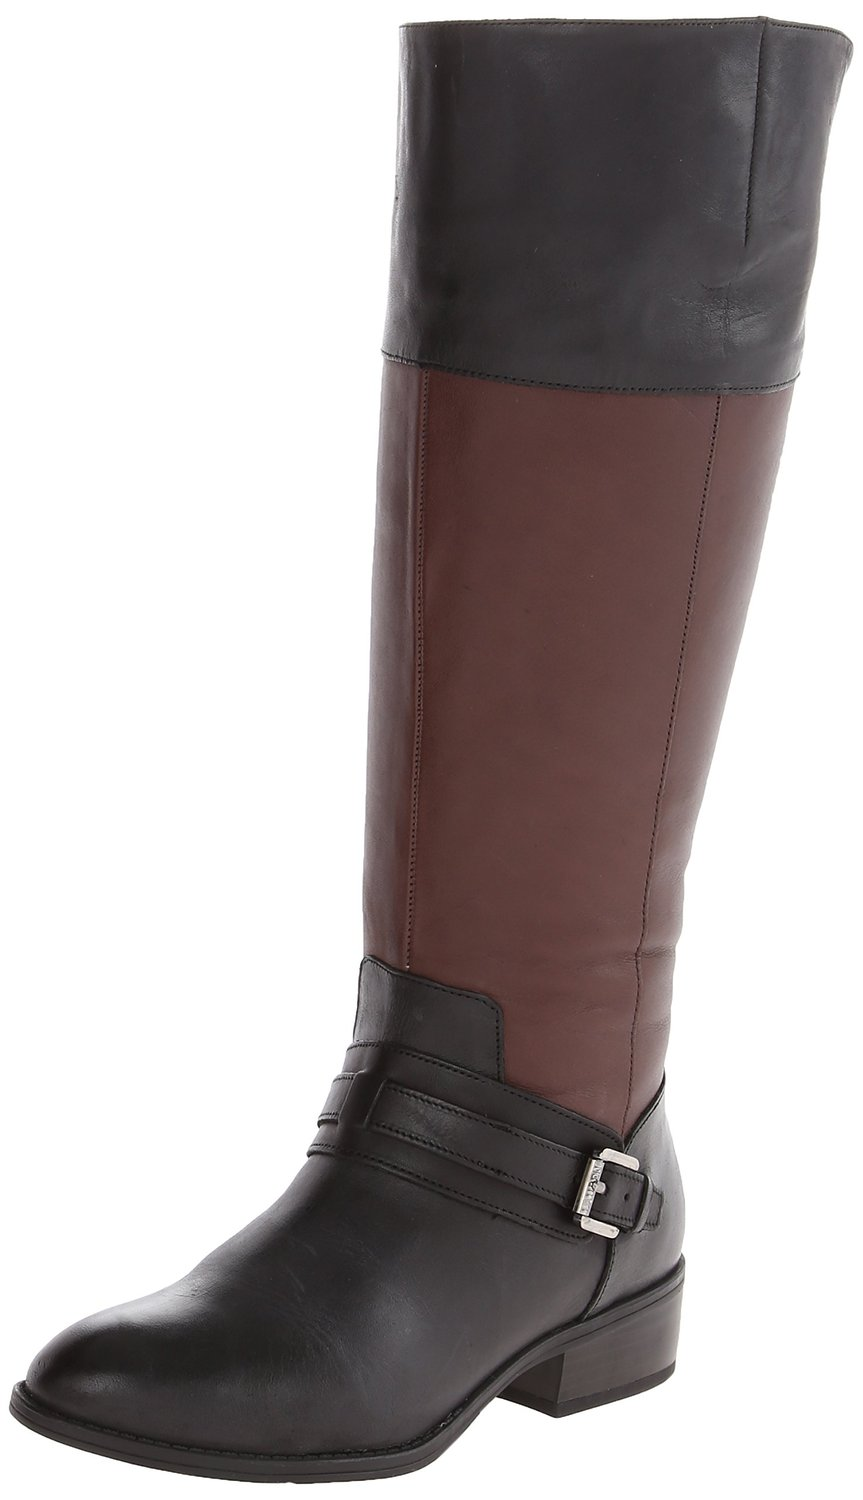 Find great deals on eBay for wide calf boots brown. Shop with confidence. Skip to main content. eBay: XOXO MARCHER BROWN WIDE CALF BOOT WOMENS SIZE BRAND NEW!!! Brand New. $ or Best Offer. Free Shipping. XOXO MARCHER BROWN WIDE CALF BOOT WOMENS SIZE BRAND NEW!!! See more like this.